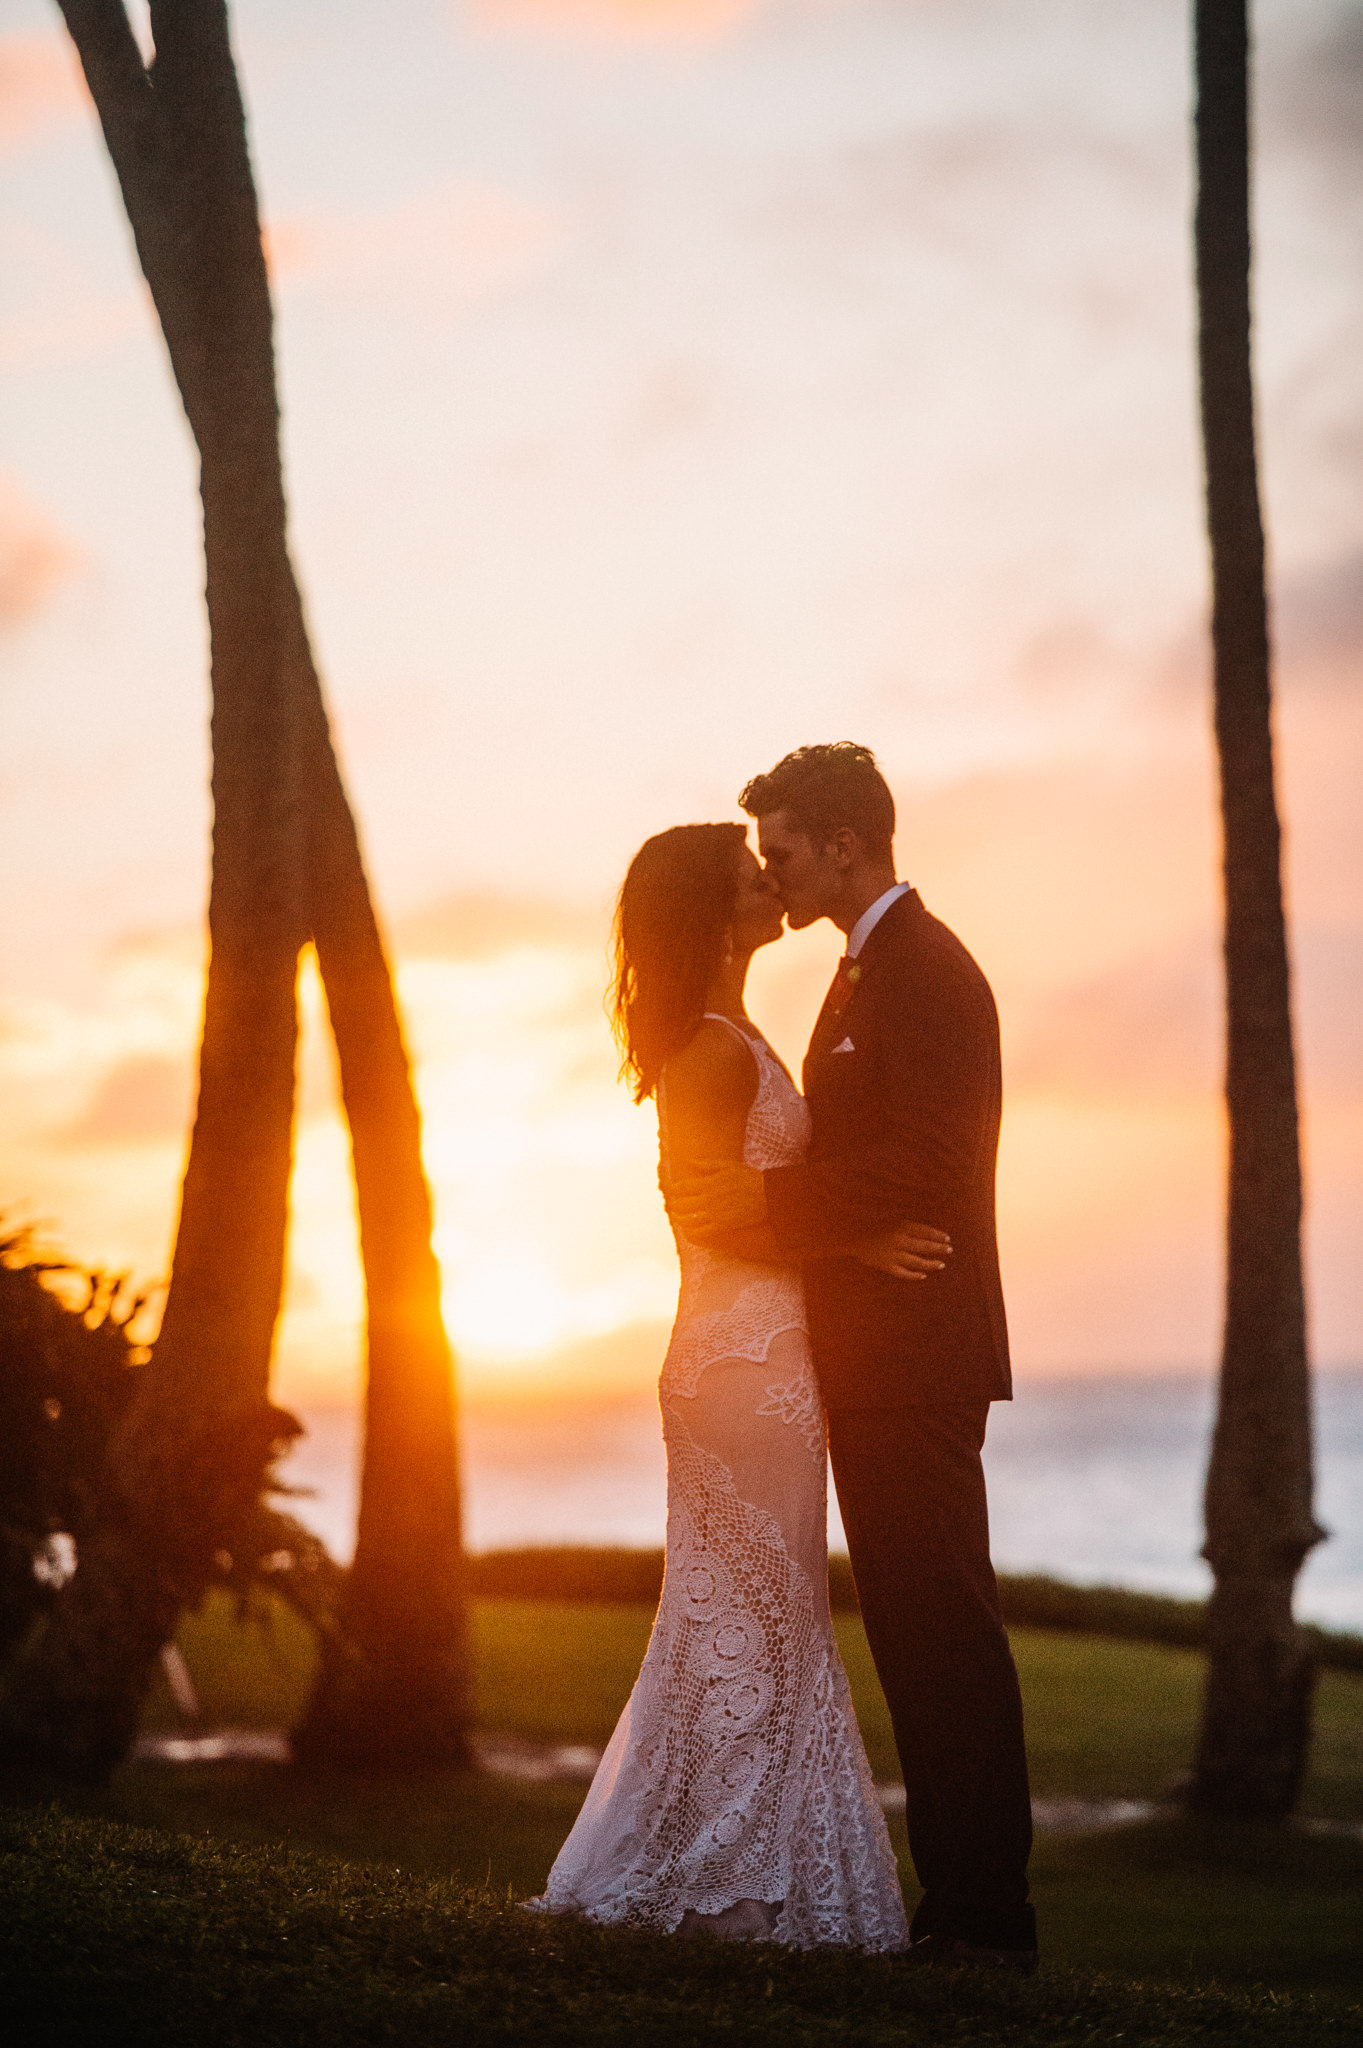 Merrimans Maui Wedding sunset